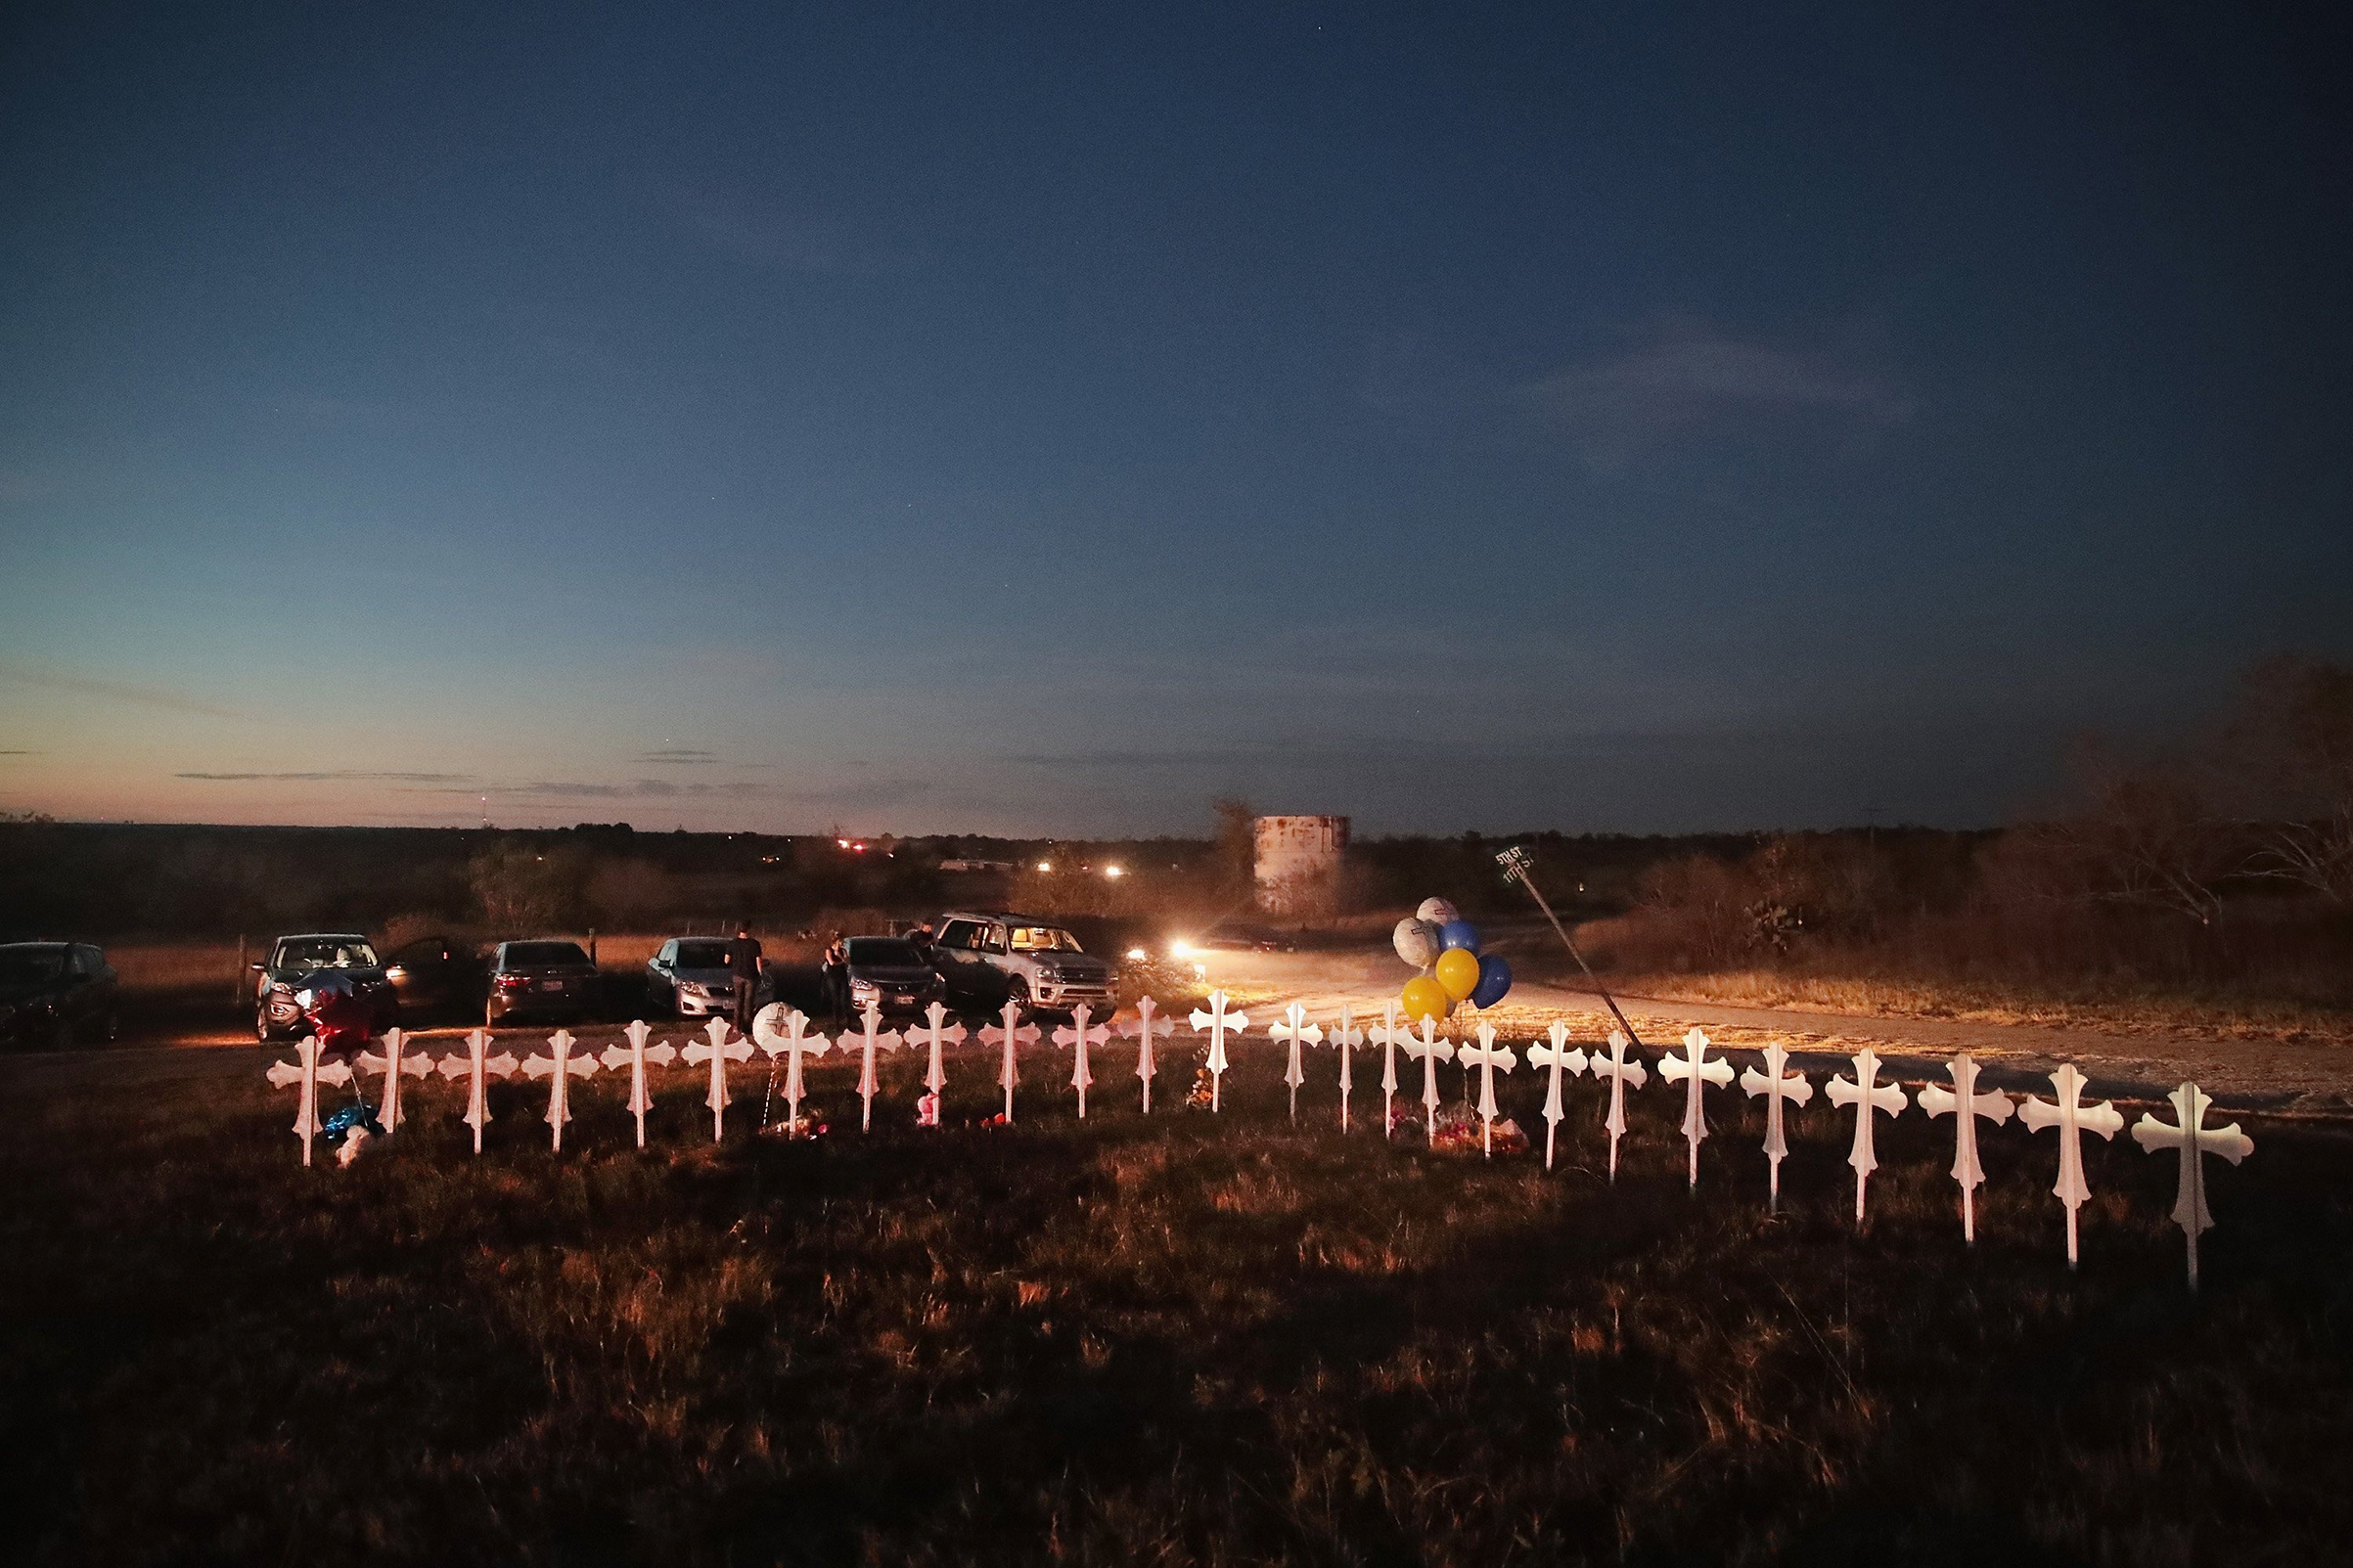 Twenty-six crosses, one for each of the dead, stand in a field on the edge of town on Nov. 6